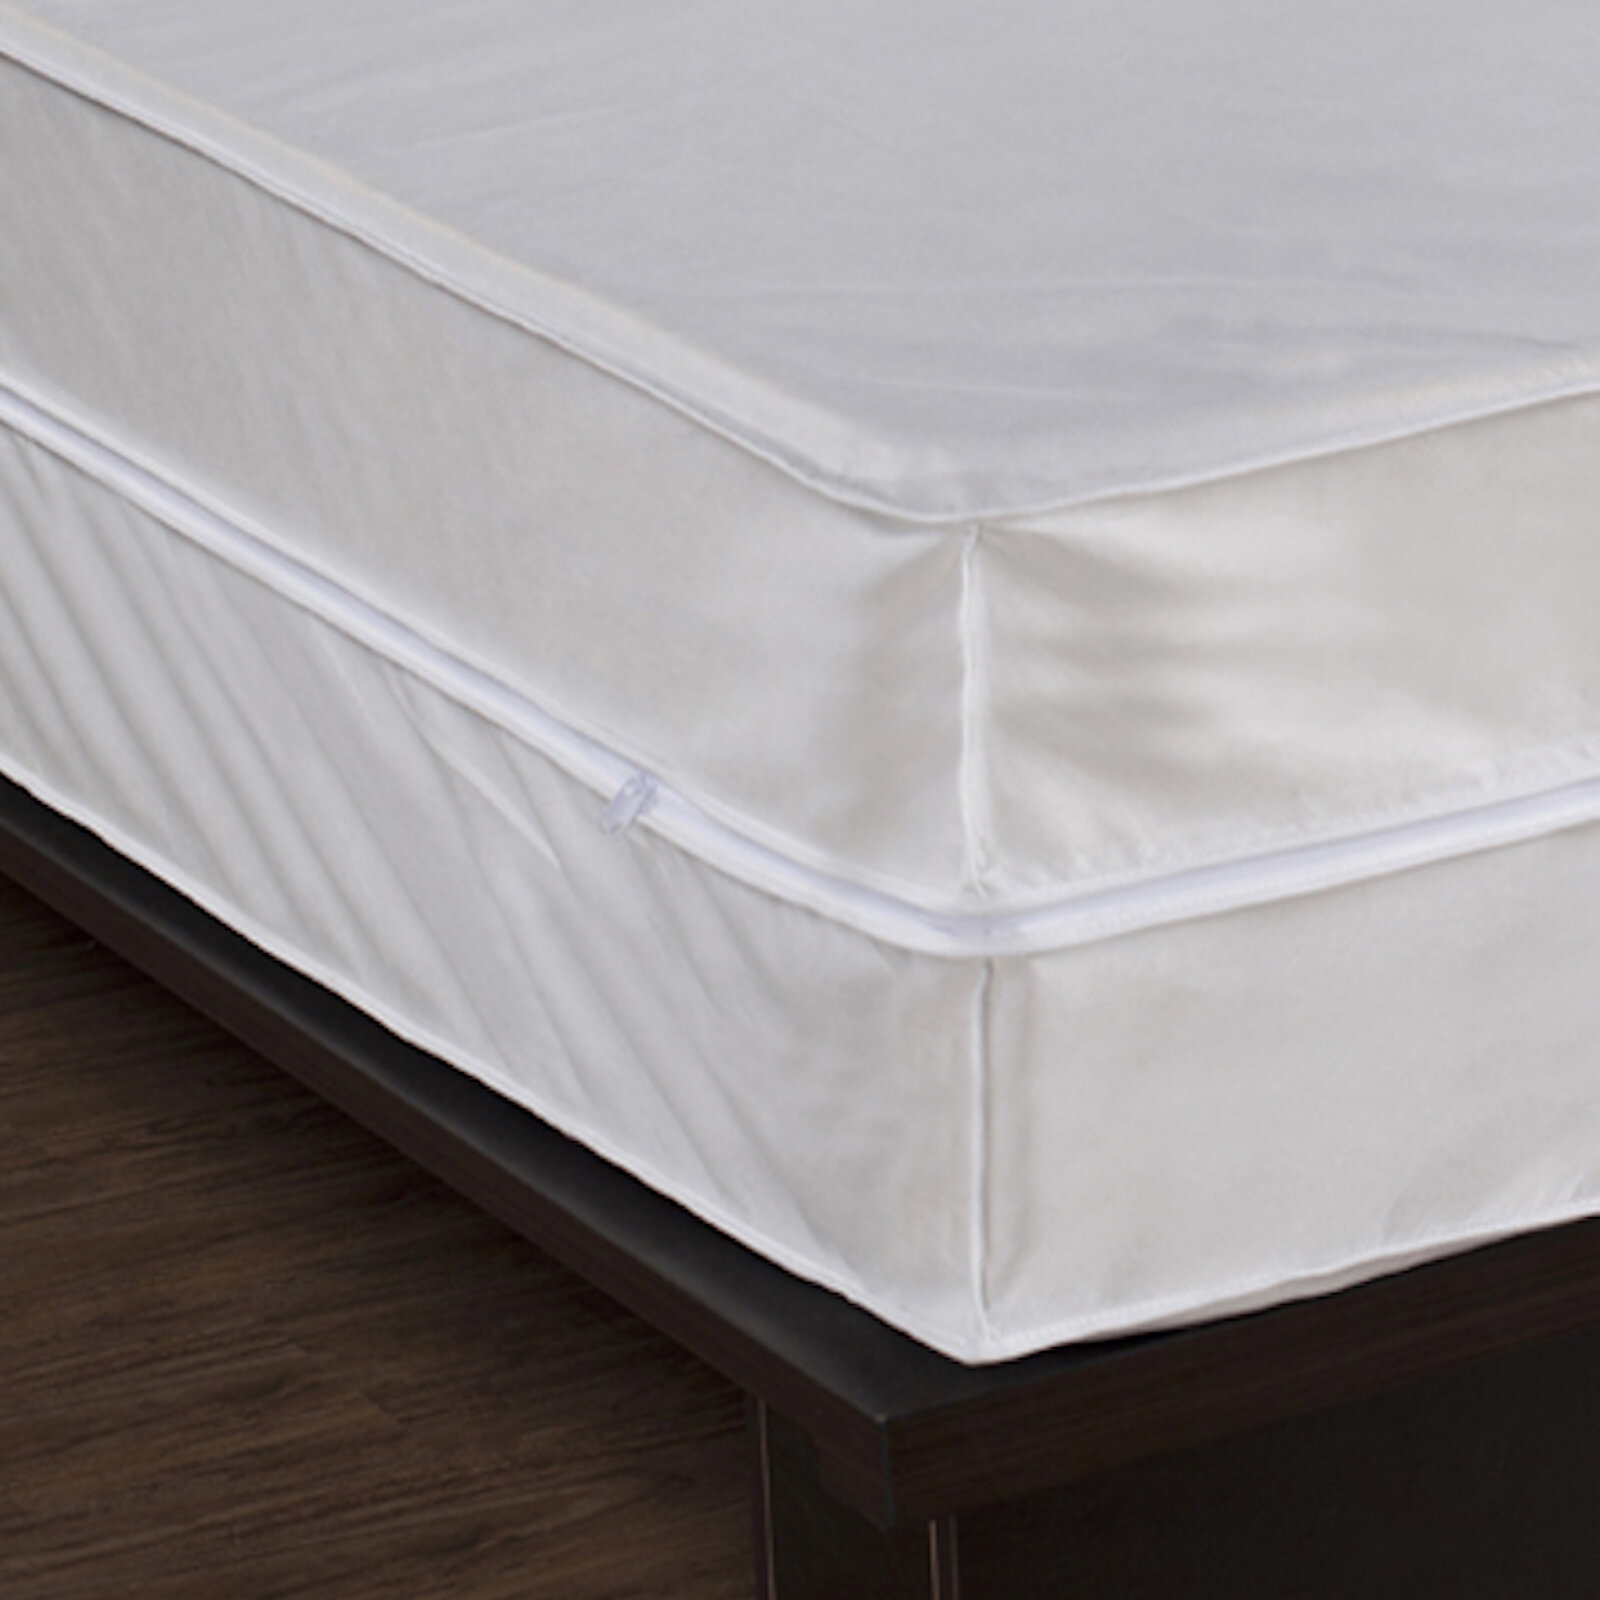 Bed Bug and Dust Mite Control Hypoallergenic Waterproof Box Spring Cover